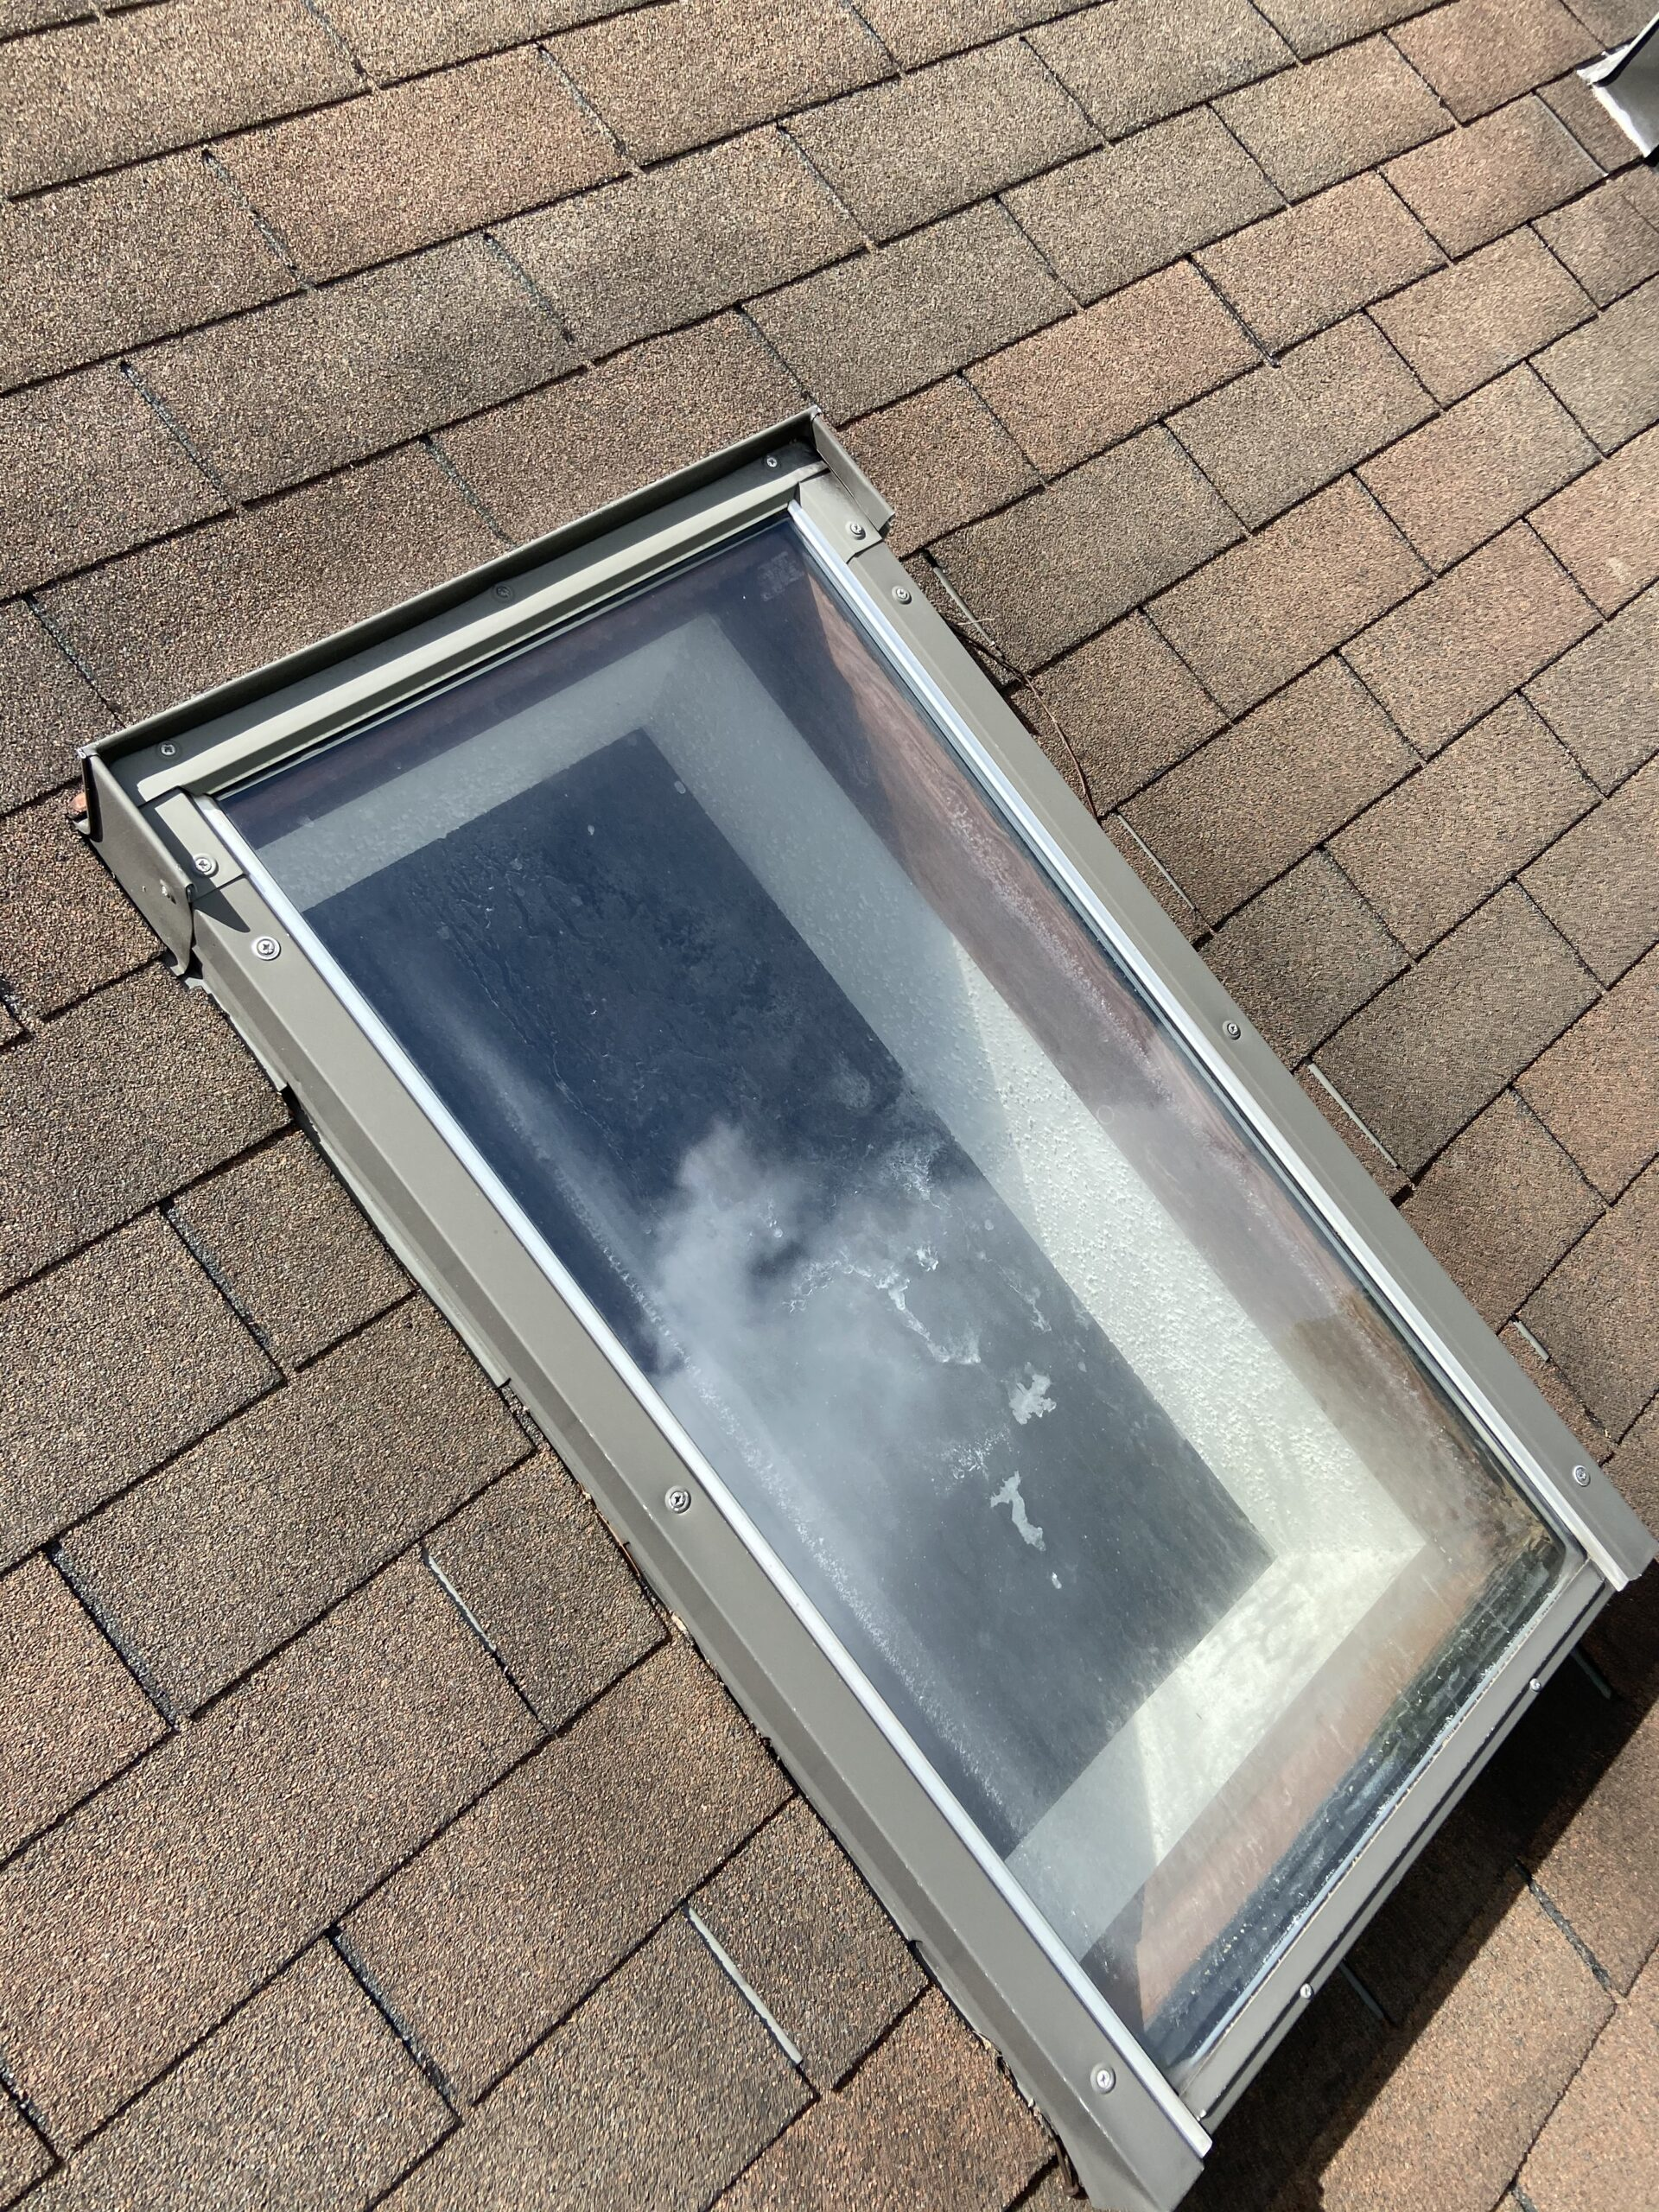 Sky Light Need to be Replaced